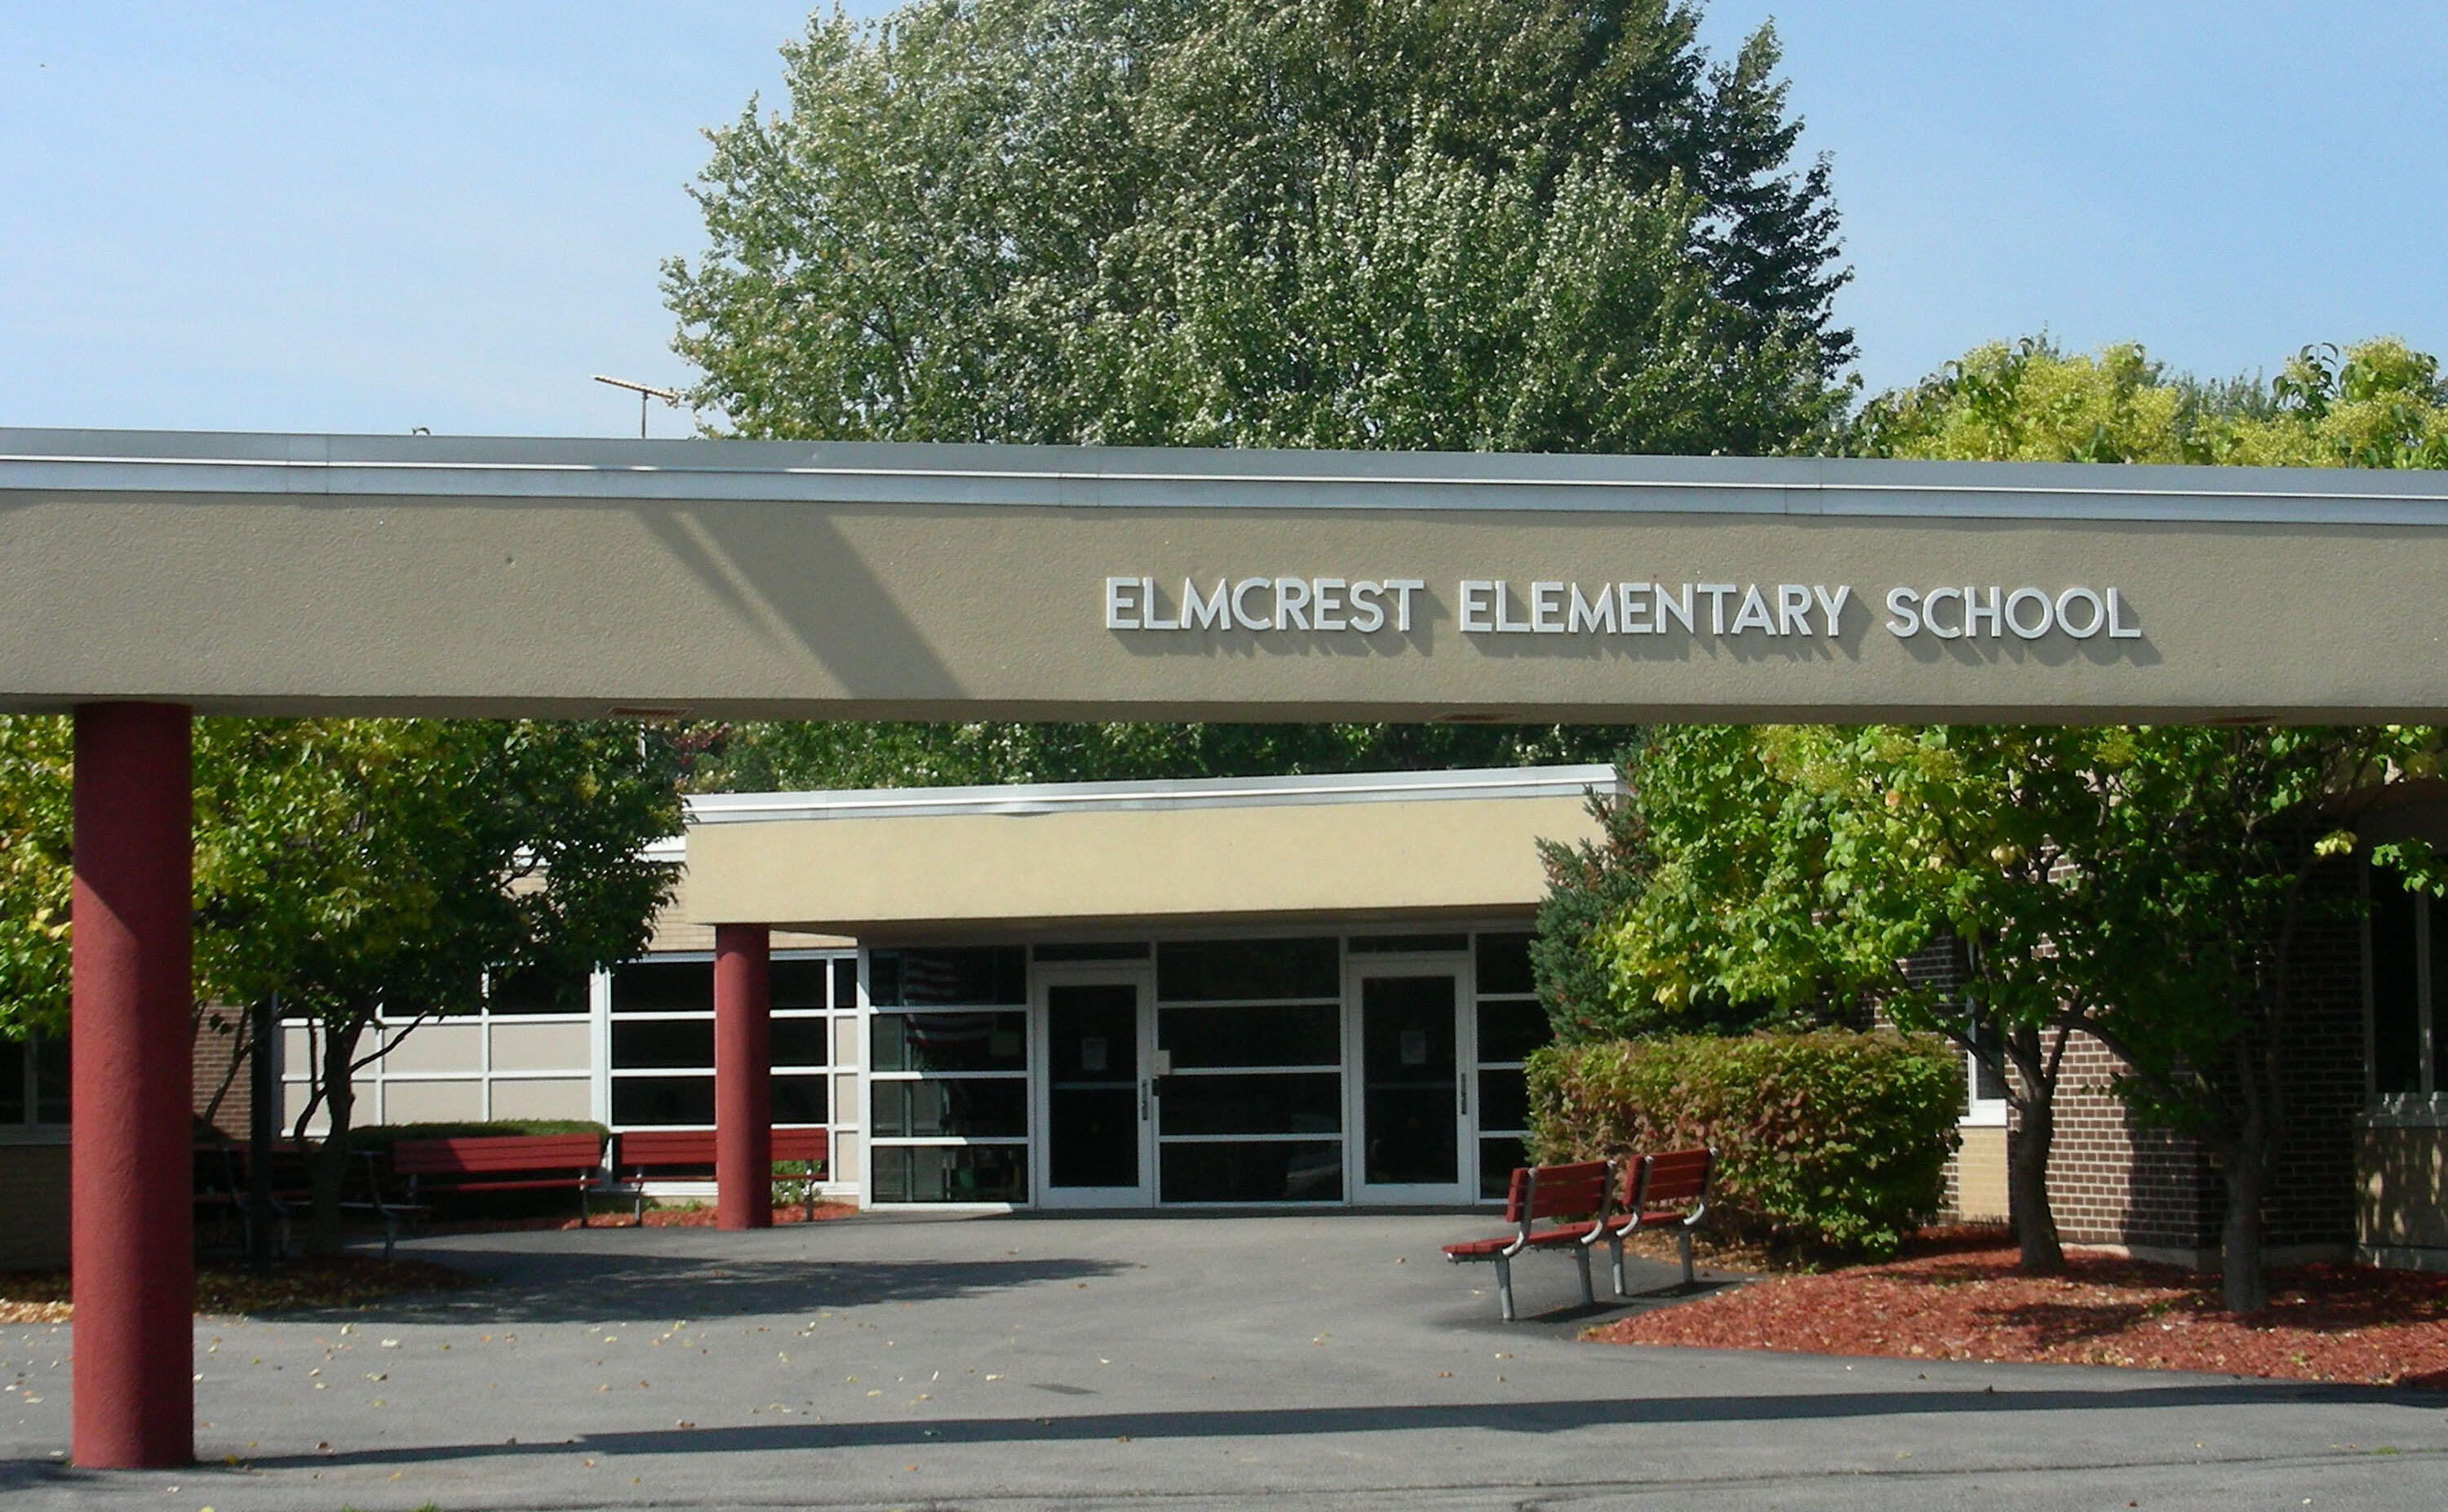 Elmcrest Elementary School Building